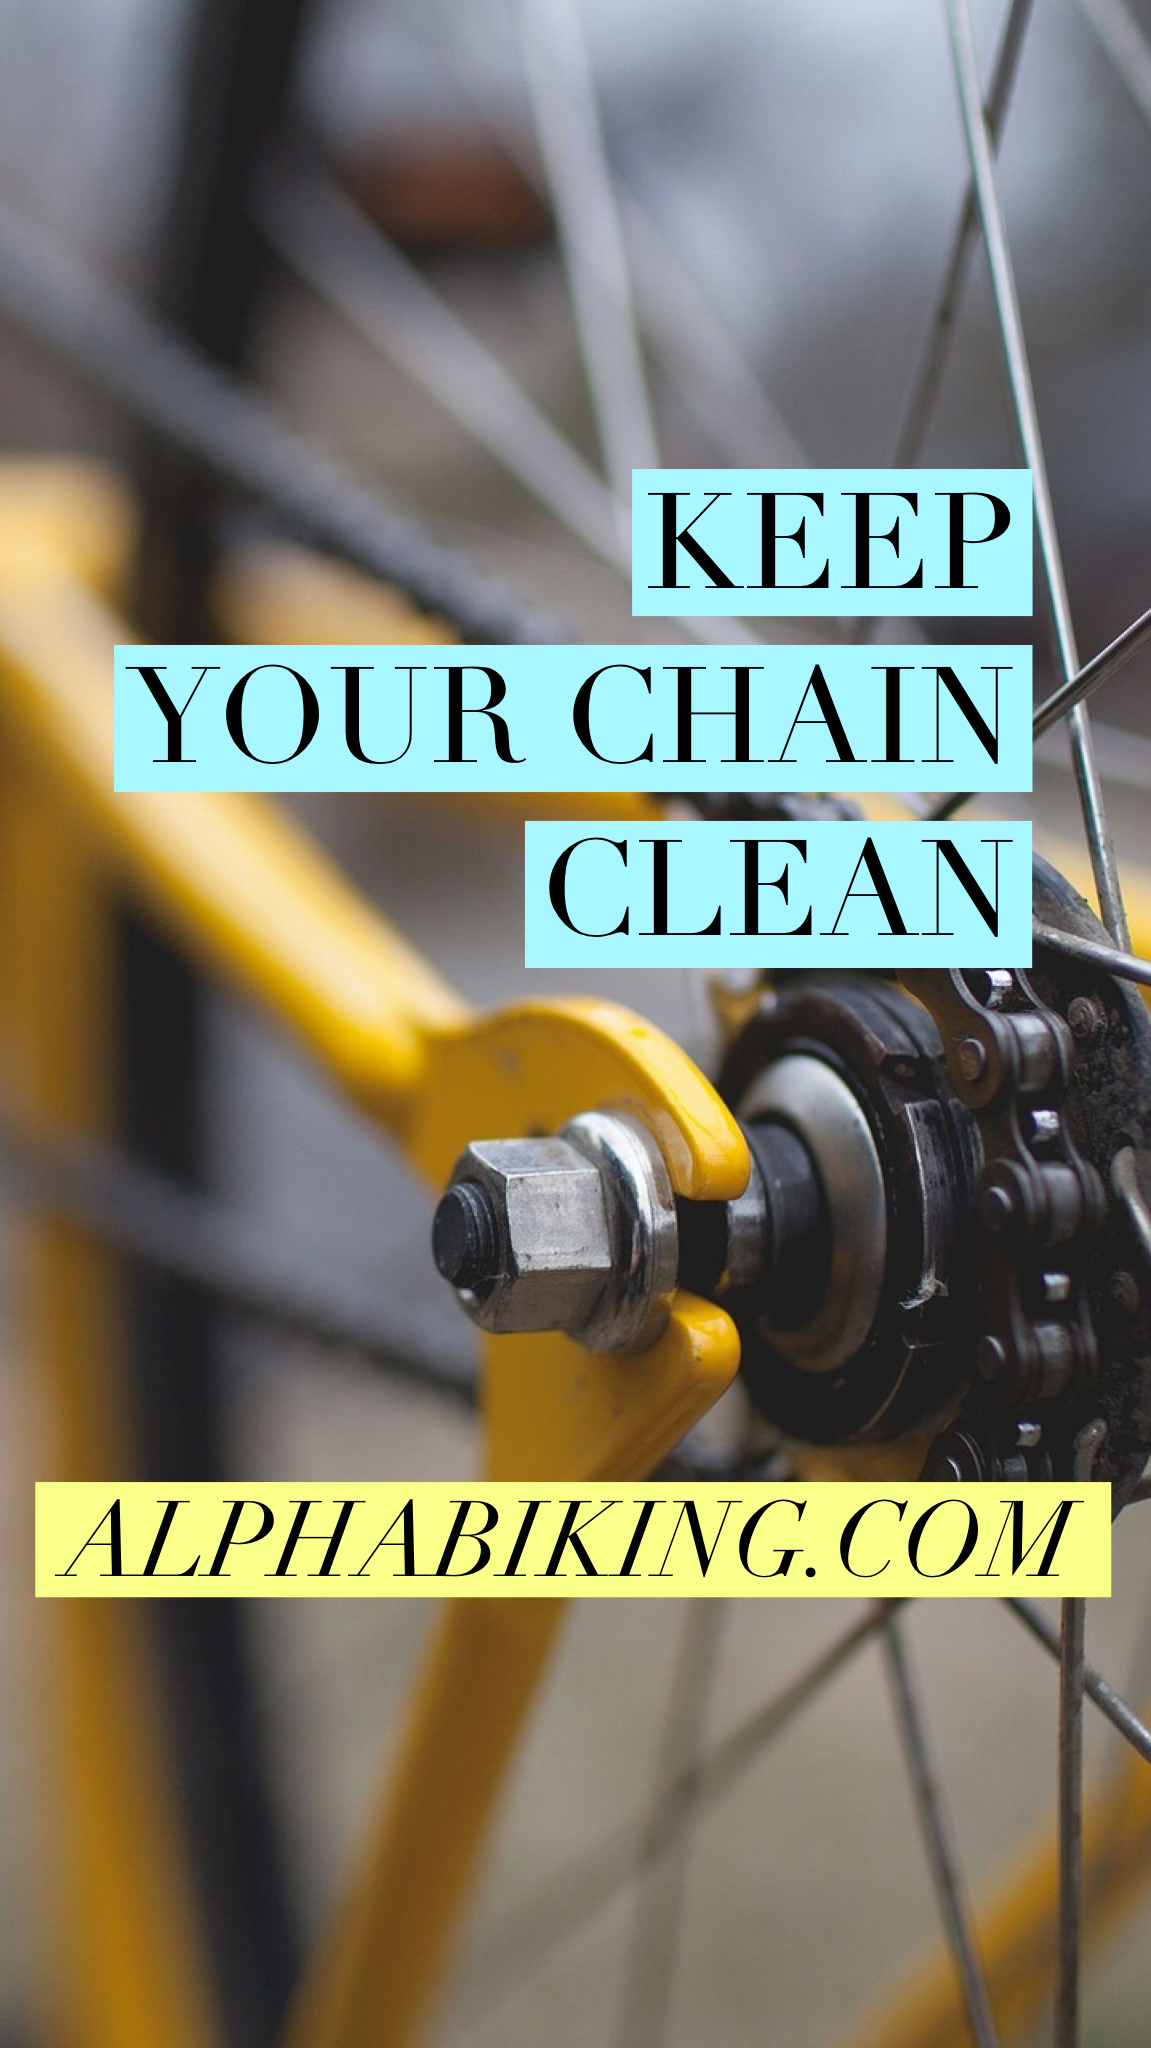 Bicycle Chain Cleaner With Images Bicycle Chains Better